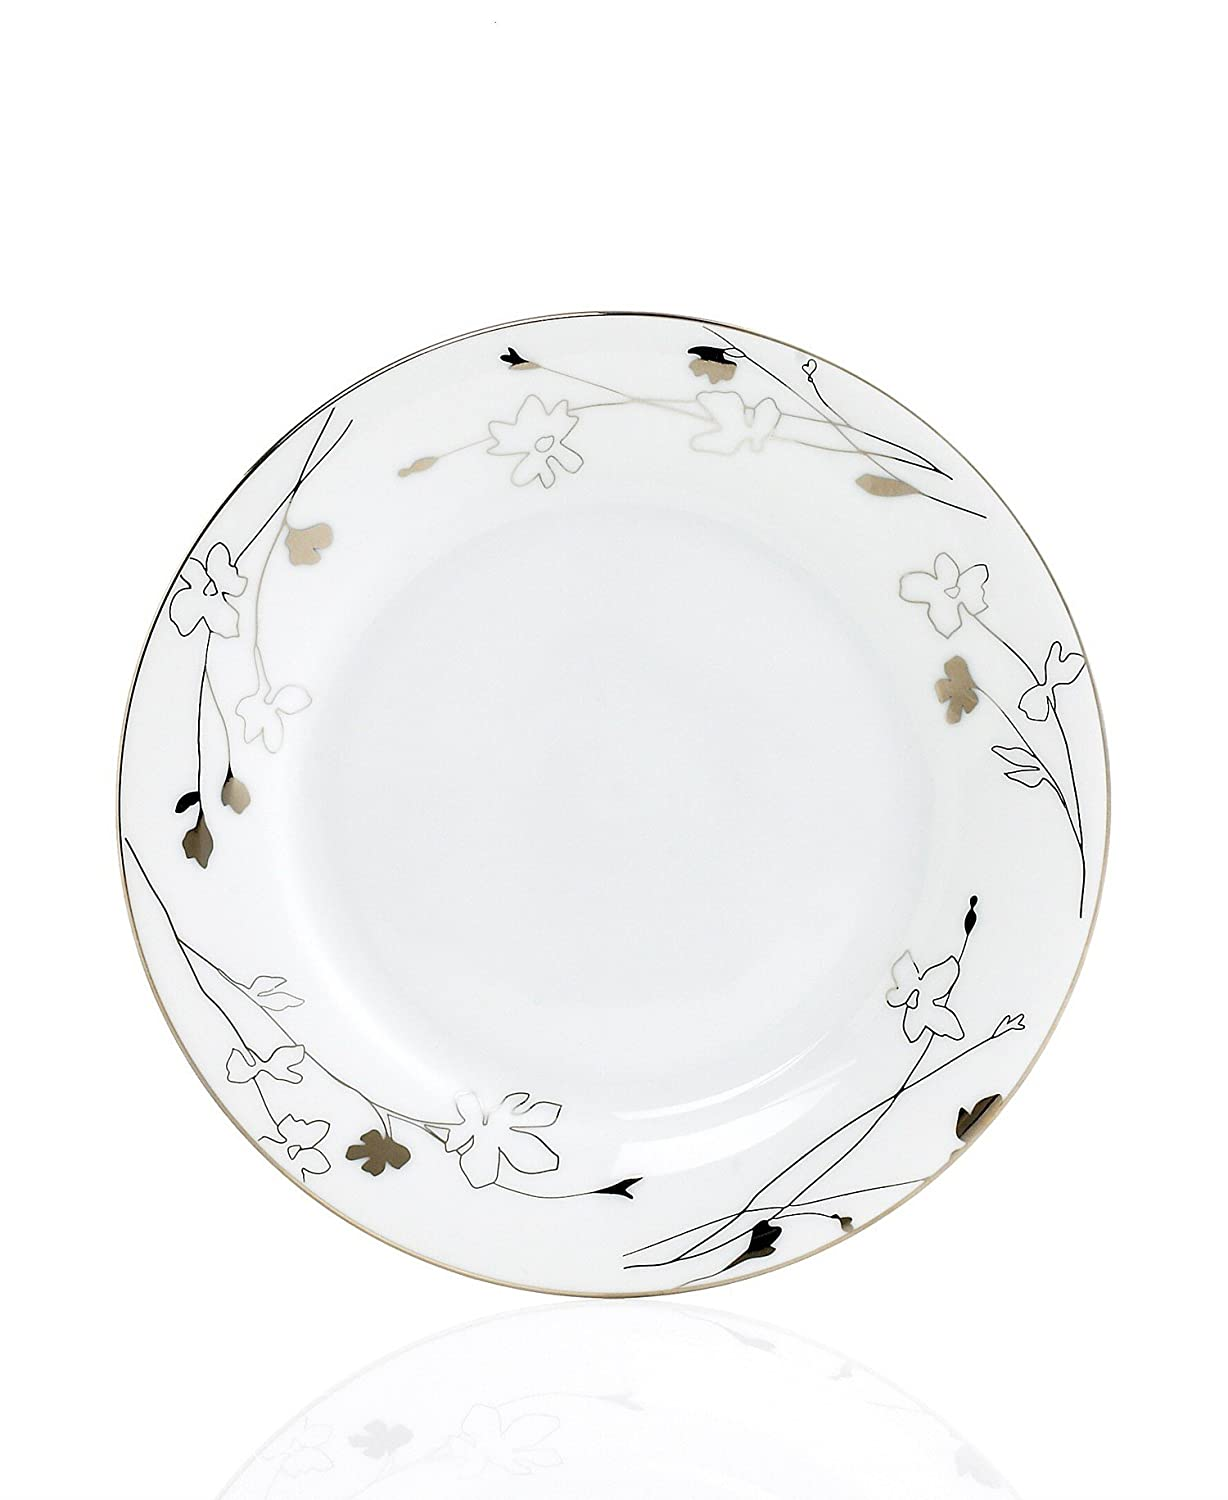 Astounding Charter Club Dinnerware Grand Buffet Platinum Silhouette Round Salad Plate Home Interior And Landscaping Ponolsignezvosmurscom